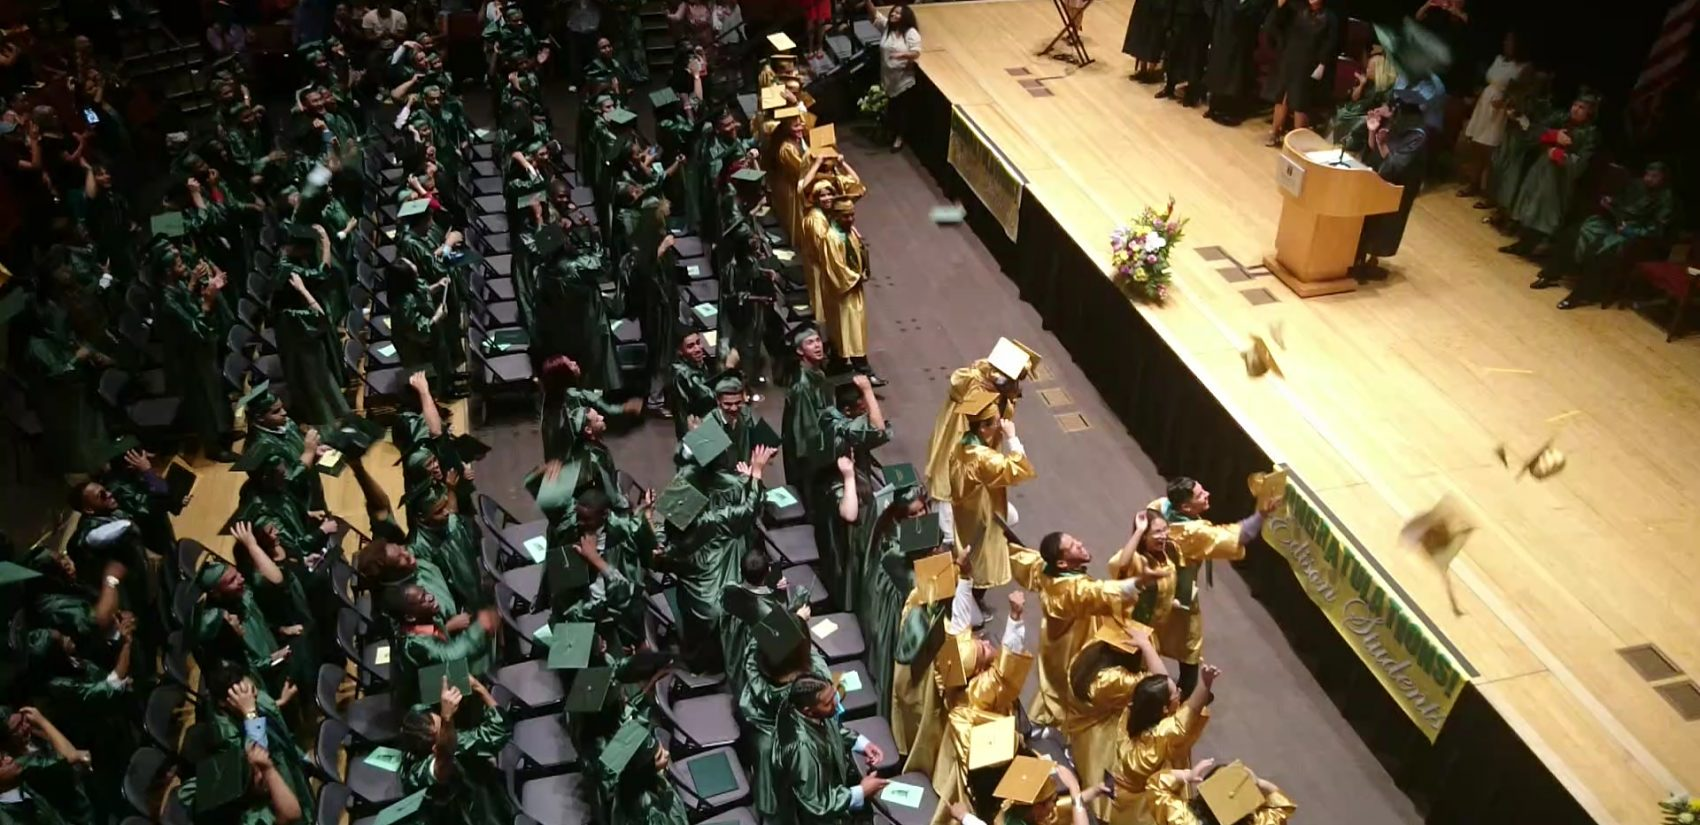 Edison students throw their caps in the air as their rite of passage is made official. Savannah (front row, middle) can be seen hugging a classmate. (Kevin McCorry/WHYY)